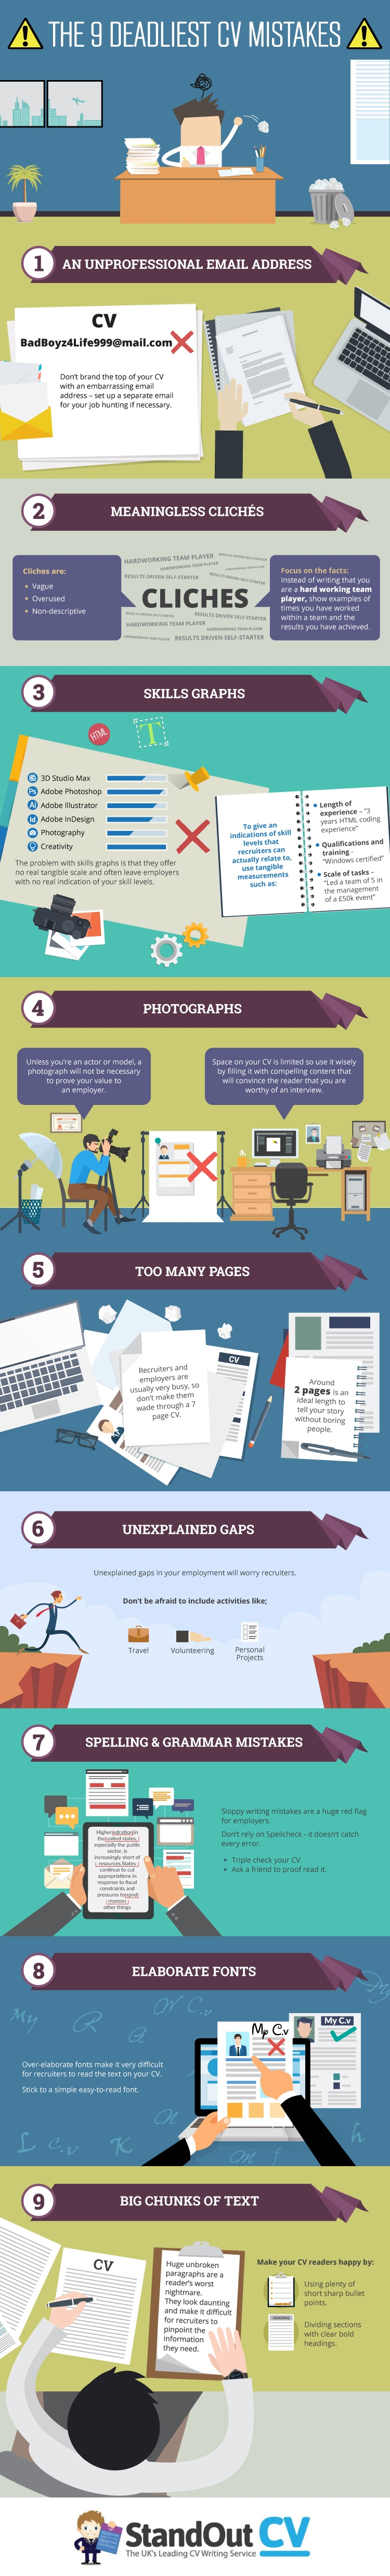 Resume Mistakes 9 Ways To Make A Resume Employers Will Hate Infographic